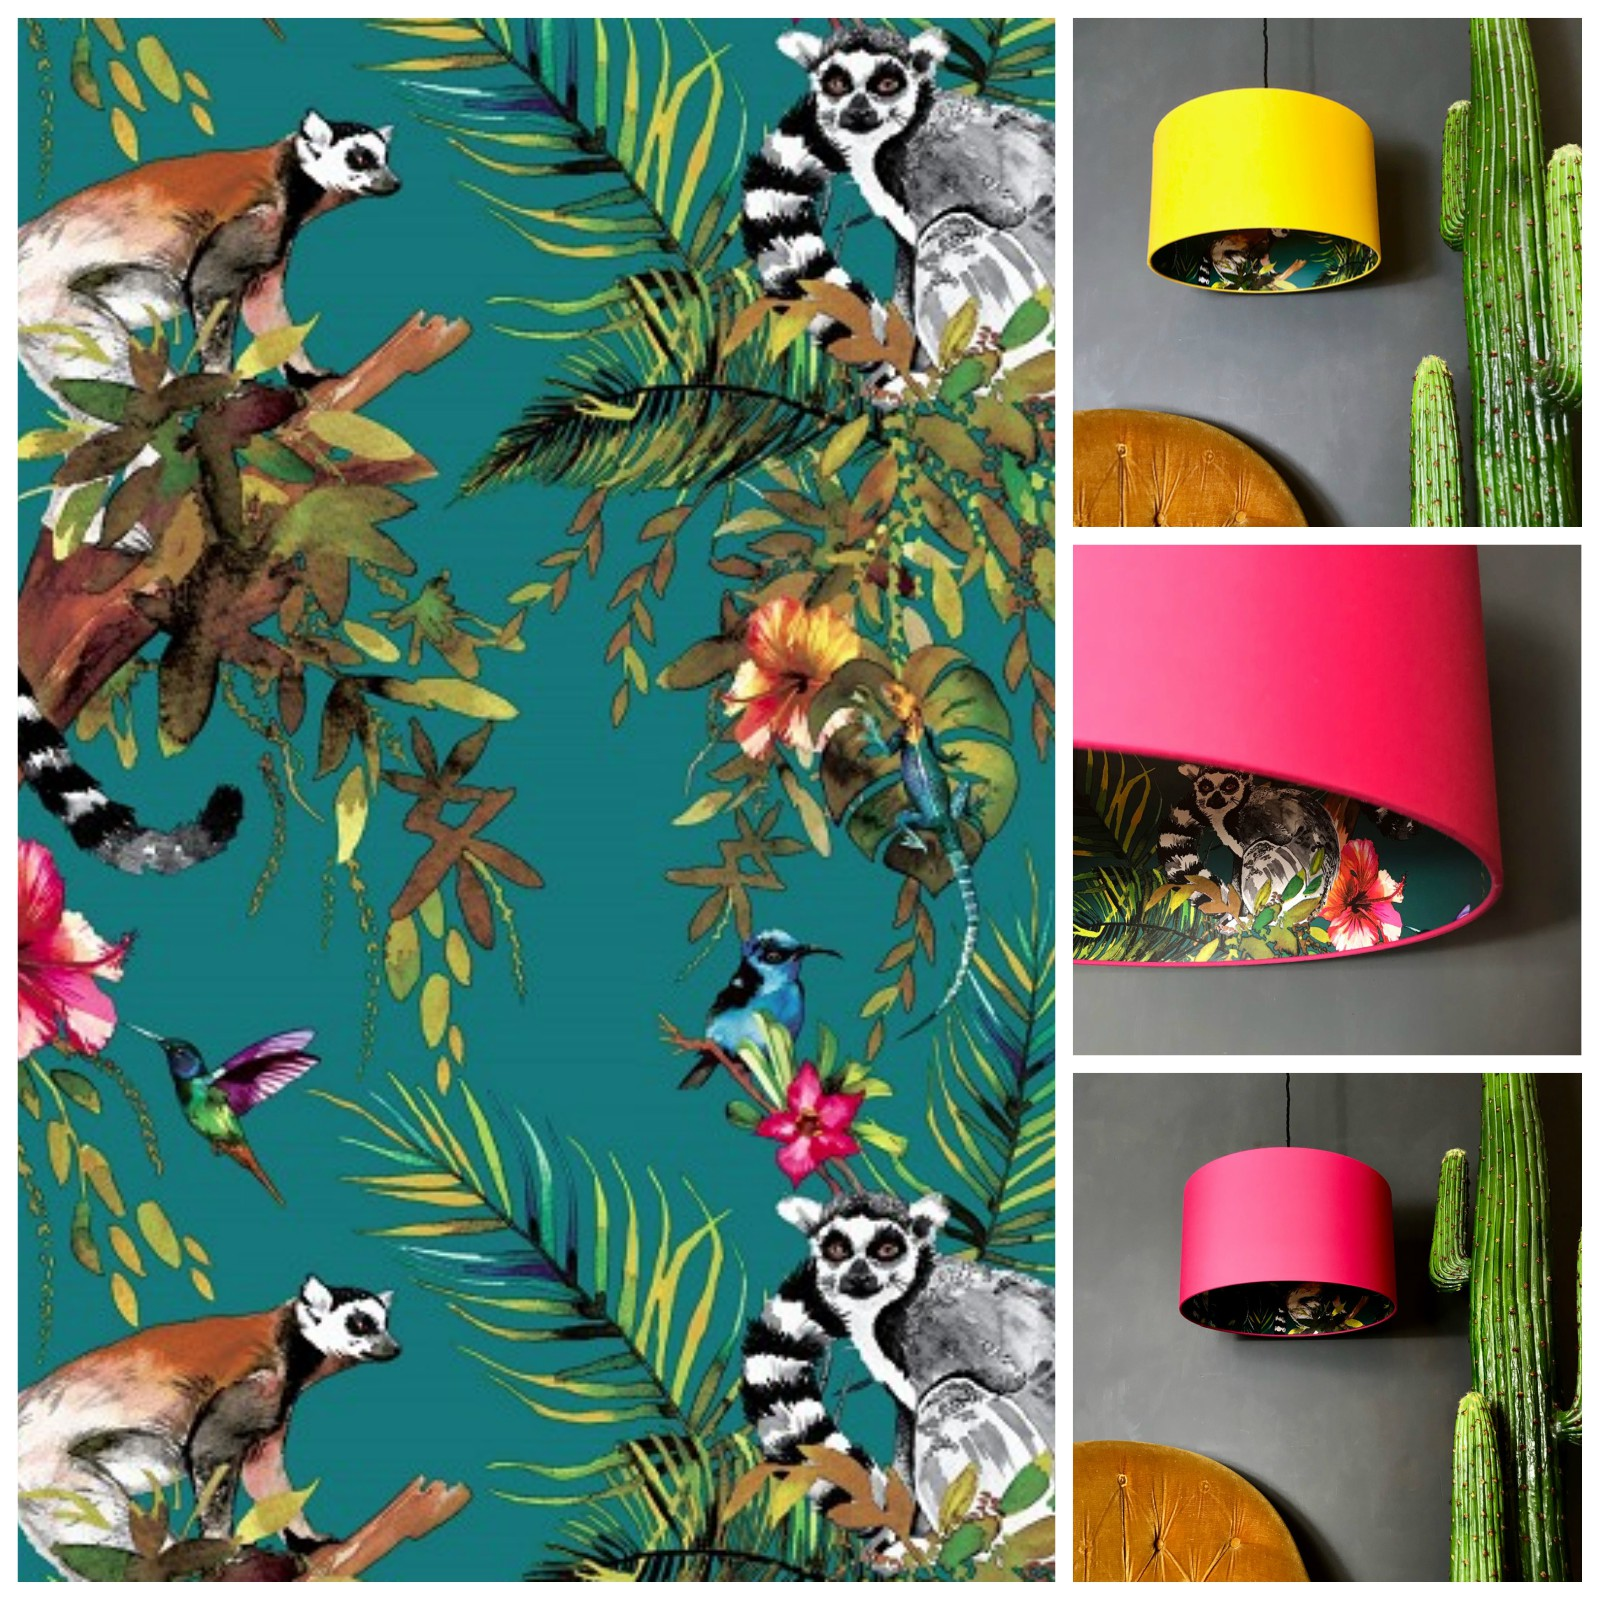 Lemur Wallpaper in Teal with Egg Yolk Yellow and Watermelon Pink